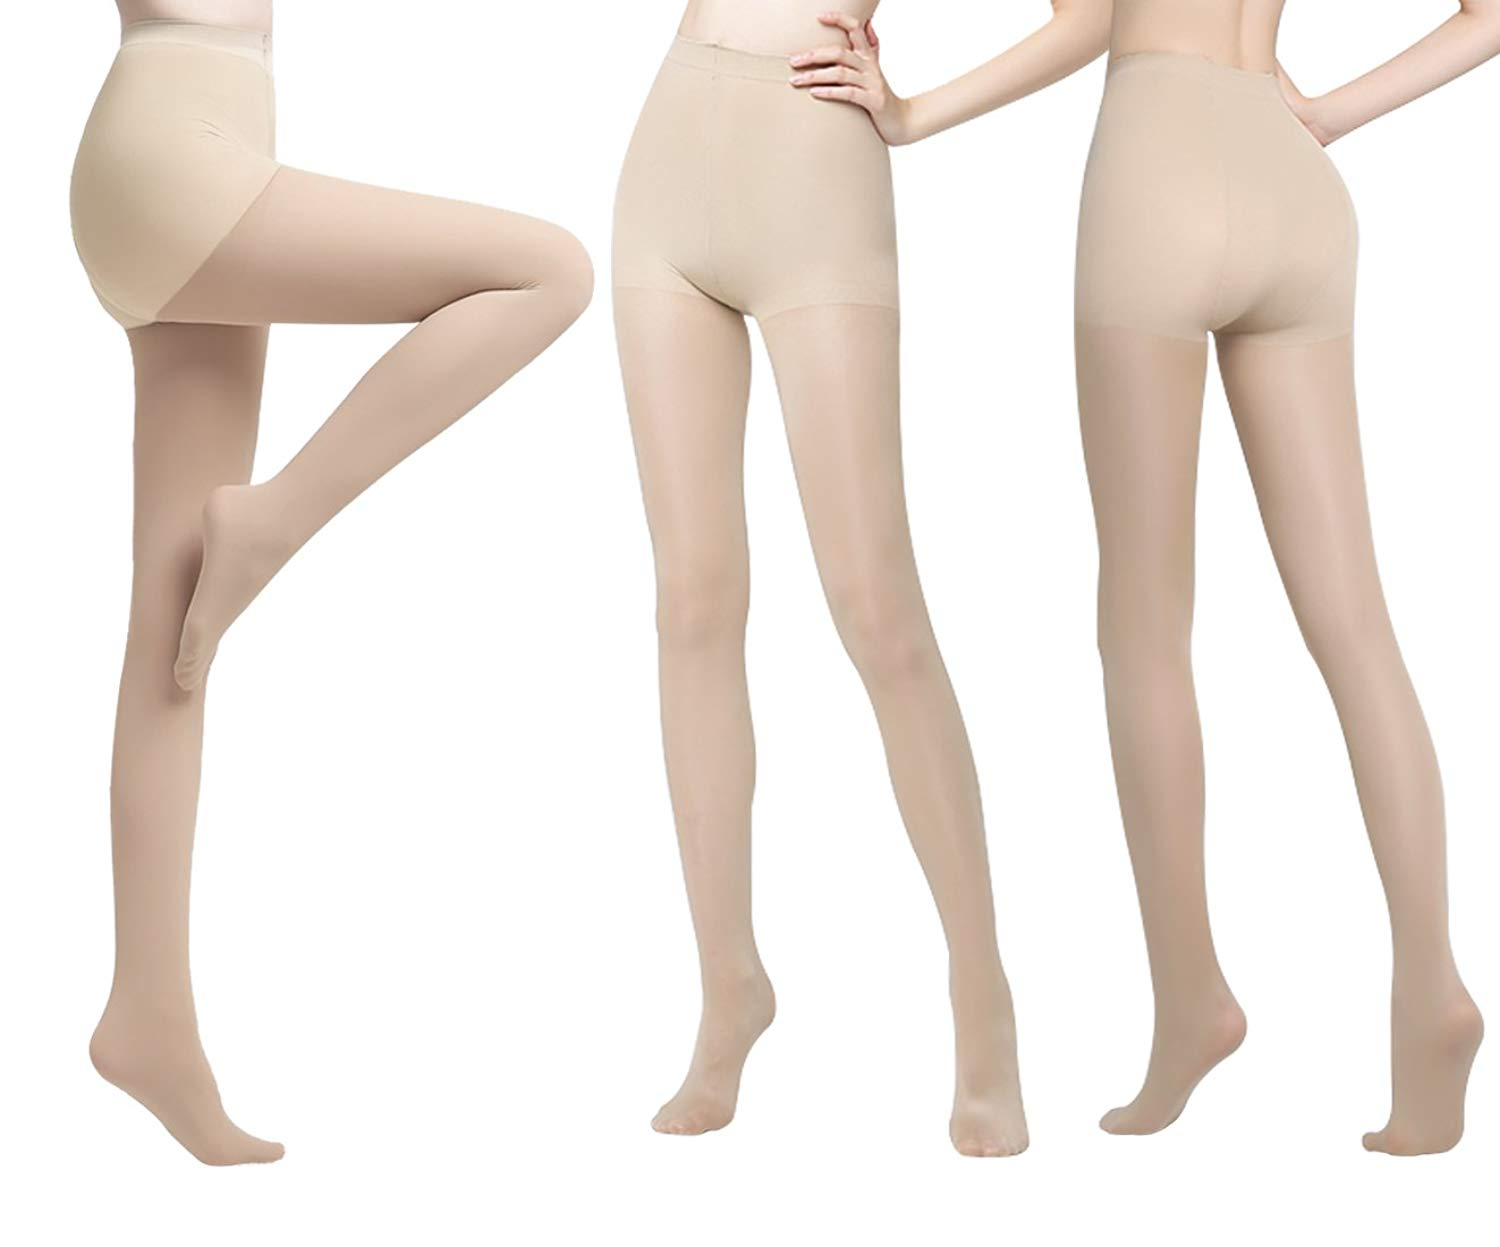 e36cc13686 Get Quotations · Women's Pantyhose Black Nude Control Top Sheer Tights  Nylons 3 Pack